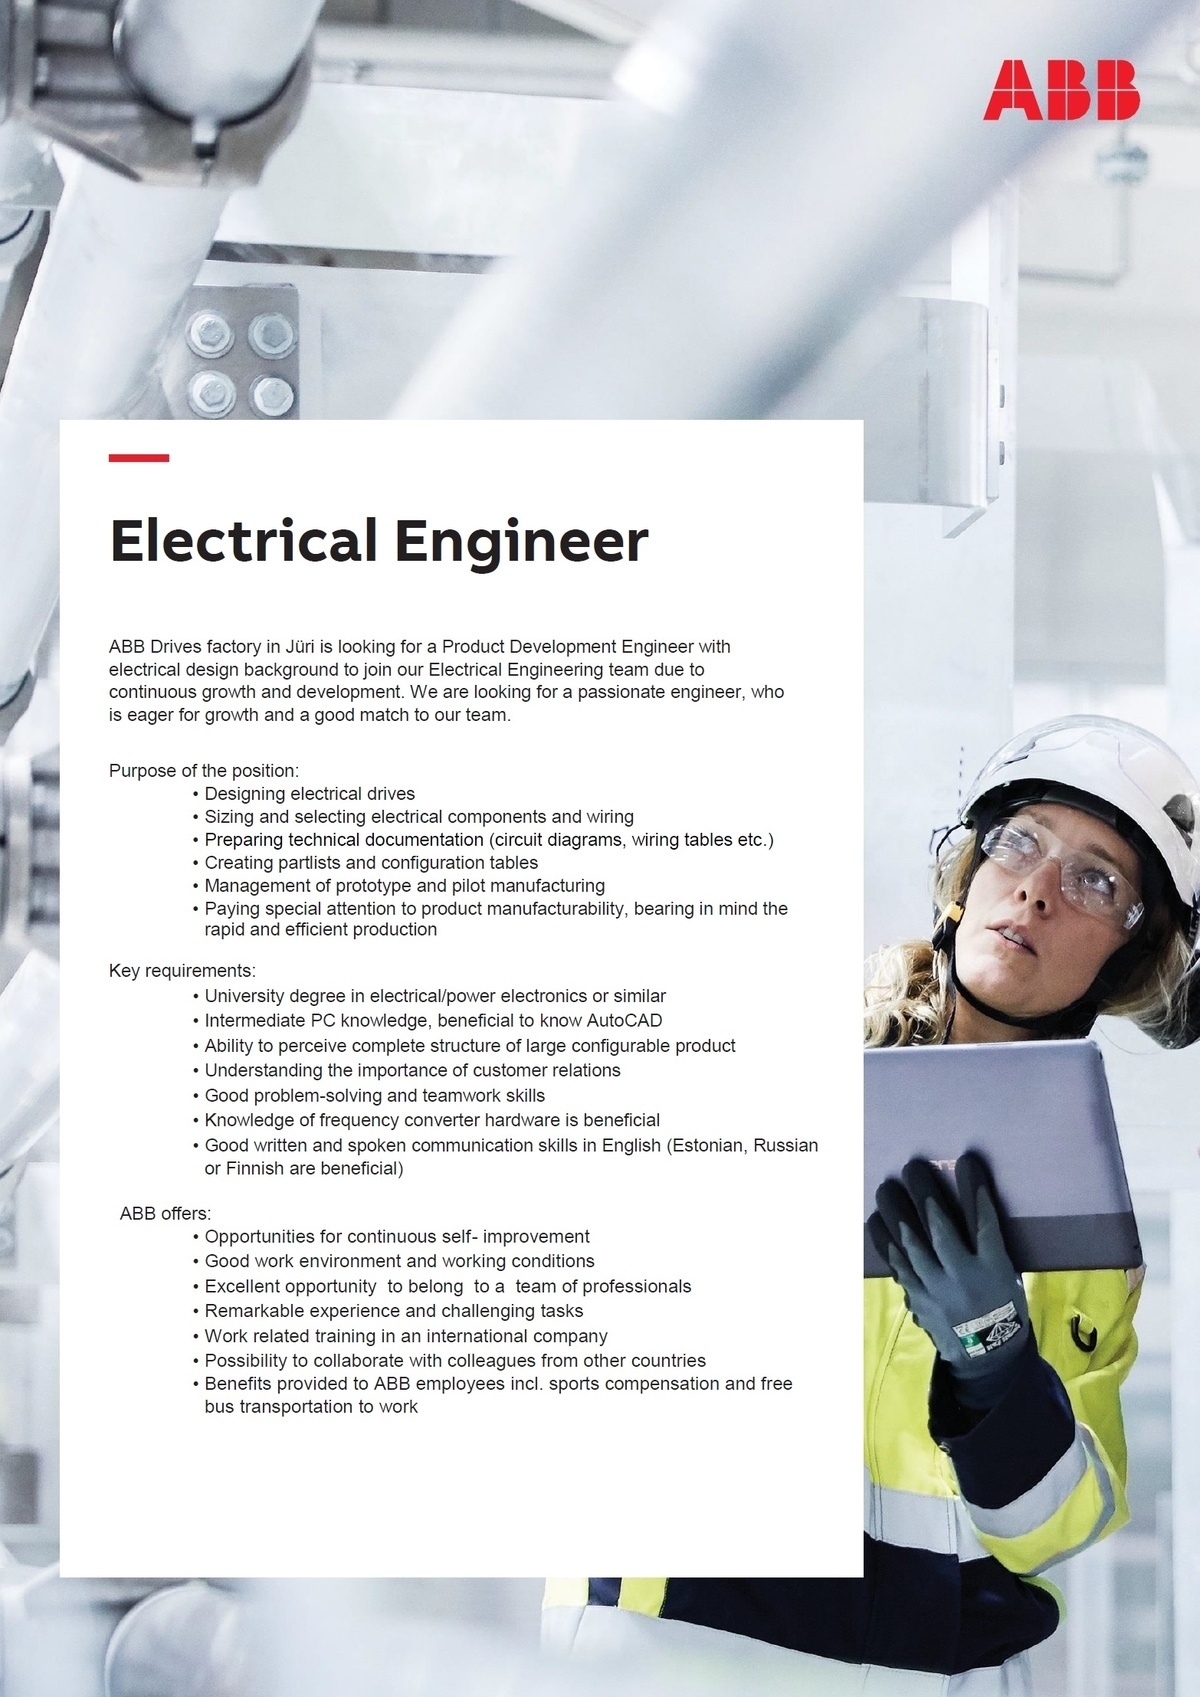 CV Market´s client Electrical Engineer